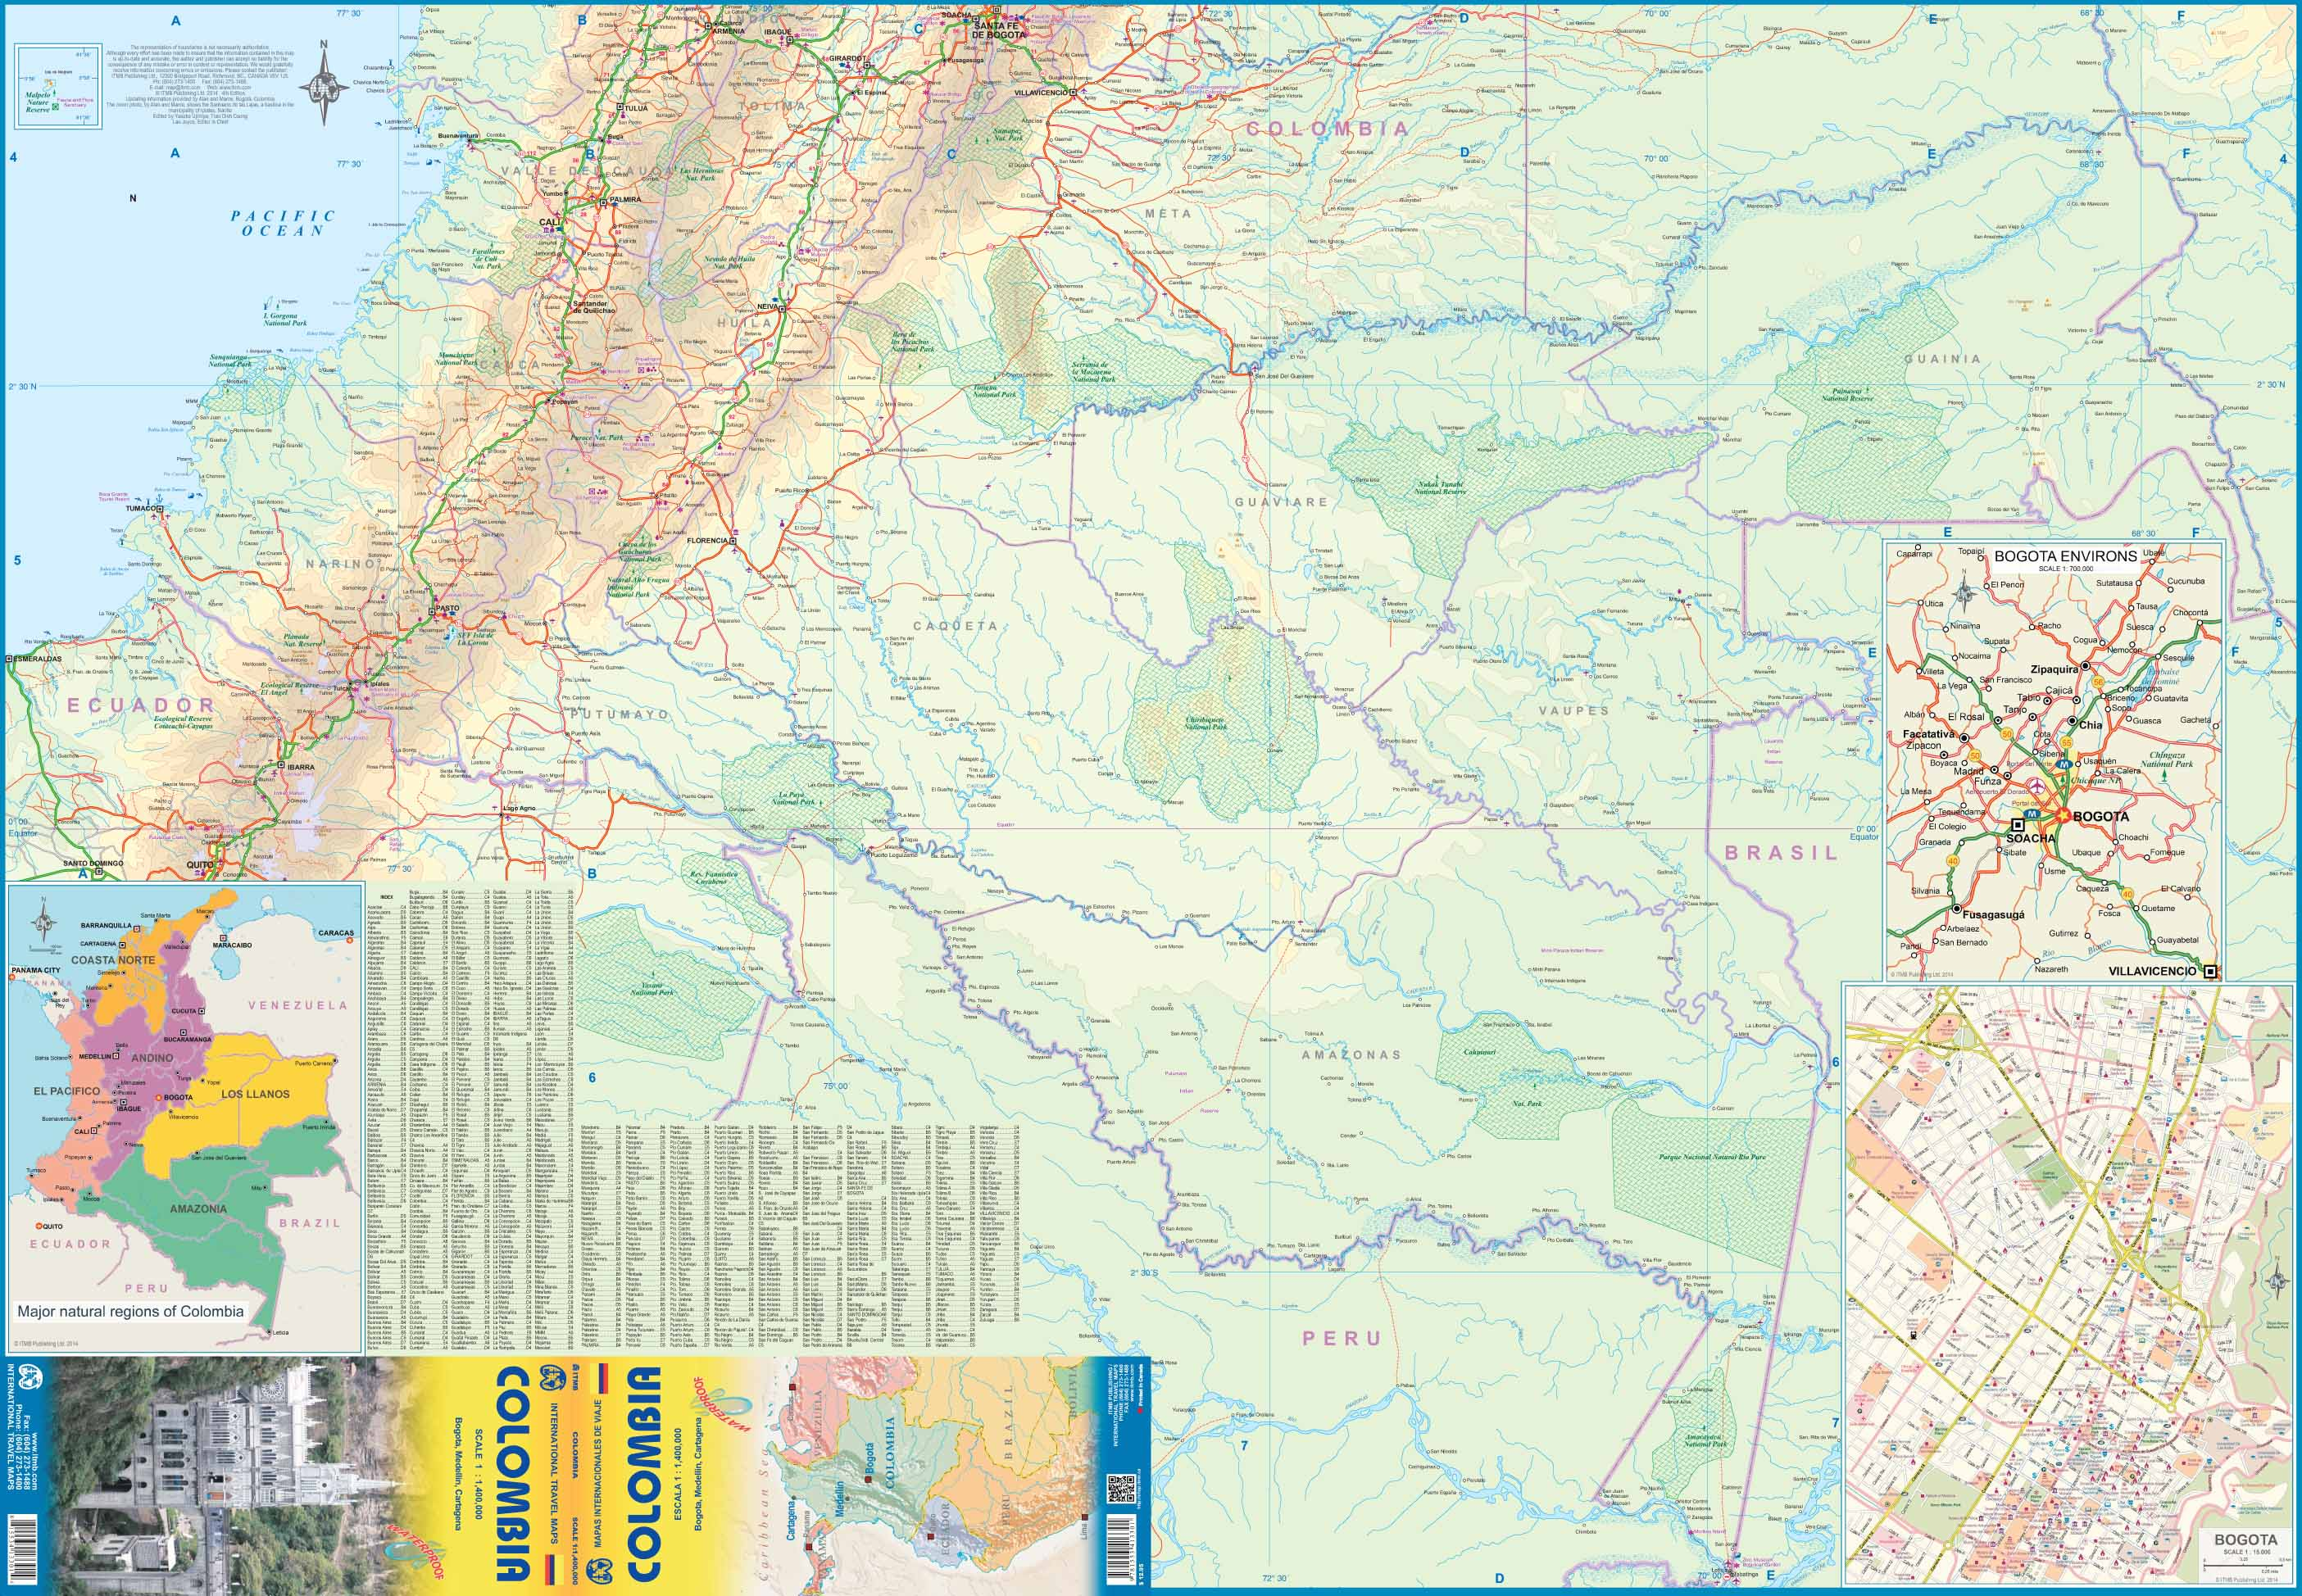 Topographic Map Of Colombia.Maps For Travel City Maps Road Maps Guides Globes Topographic Maps